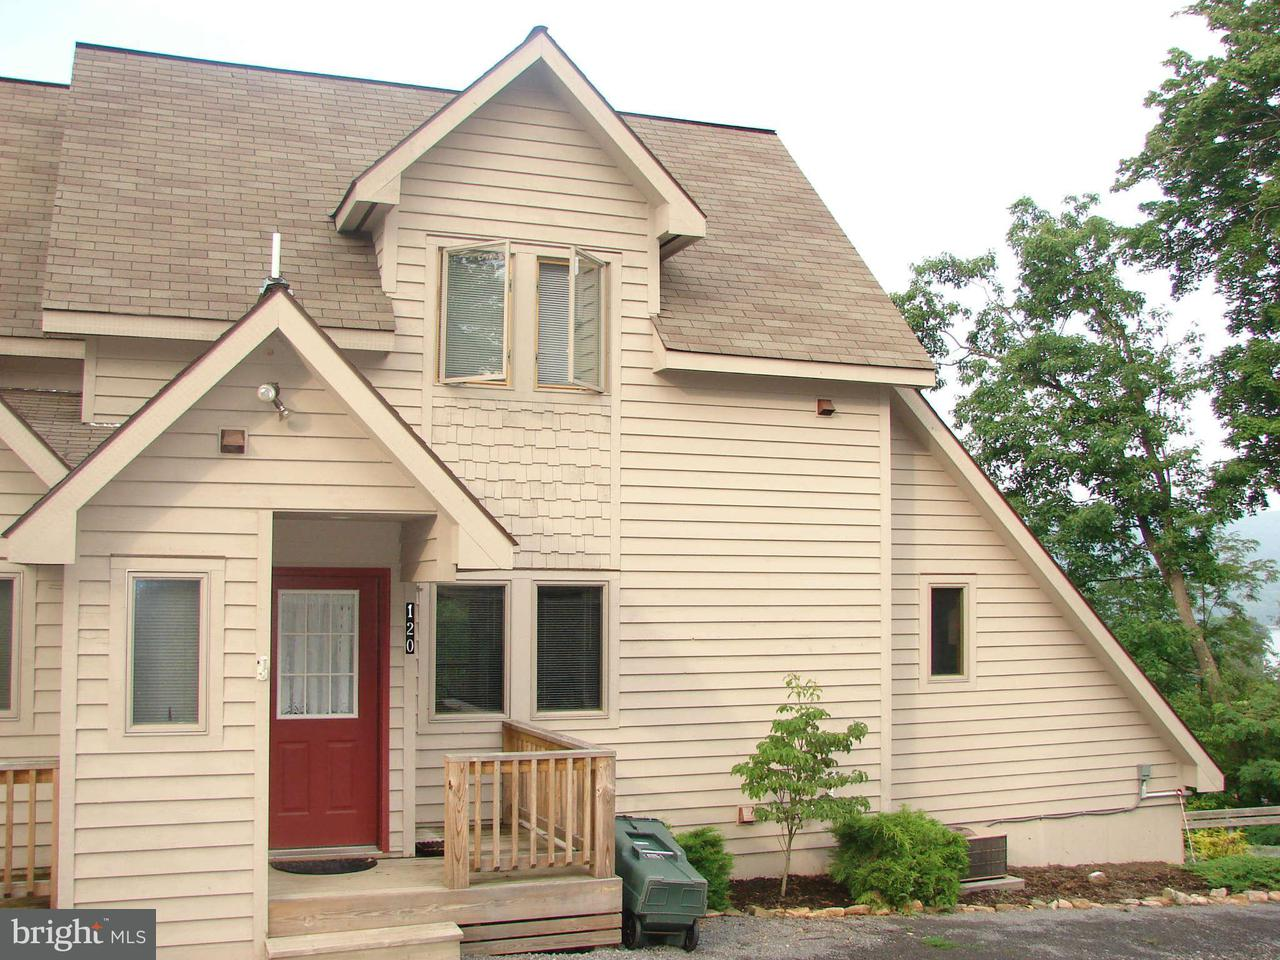 Other Residential for Rent at 120 Roman Ridge #20a Oakland, Maryland 21550 United States